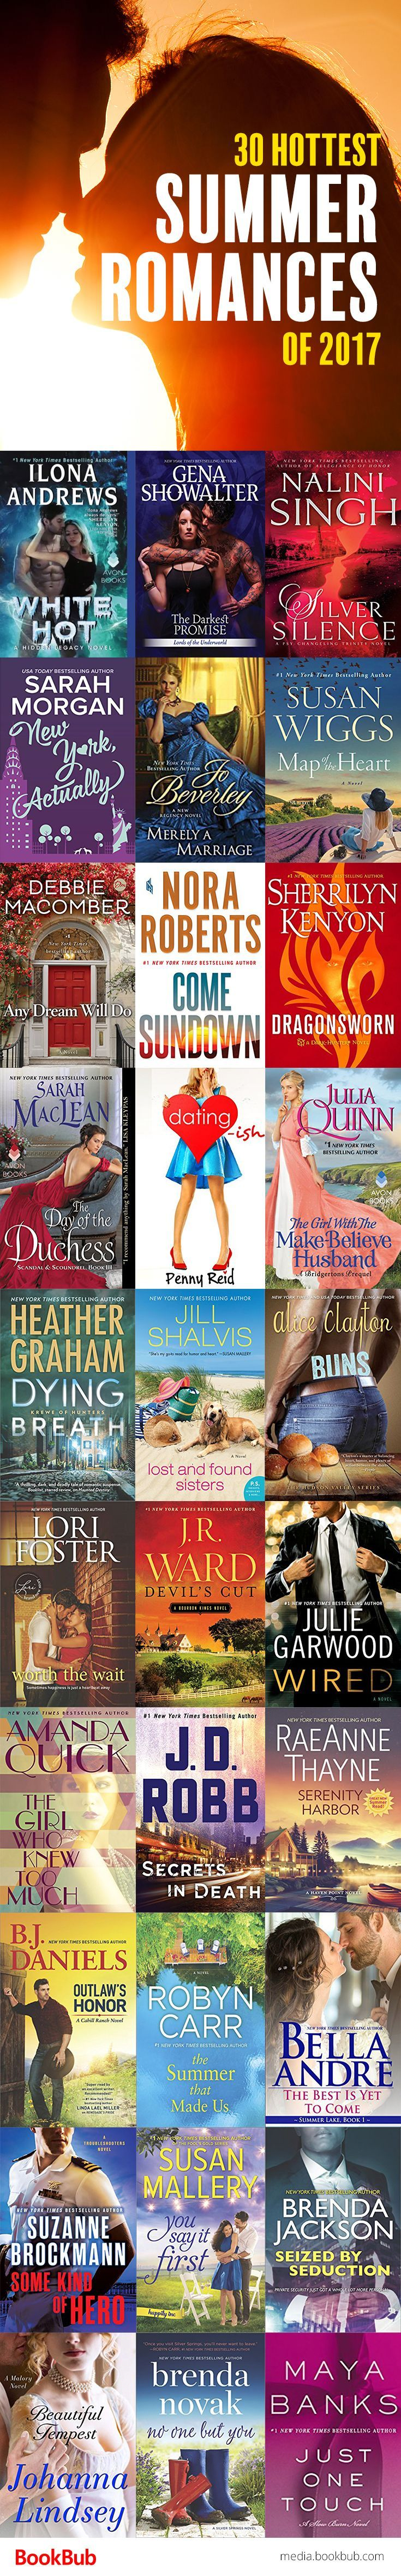 The hottest romance books of the summer, including steamy contemporary romances worth reading.